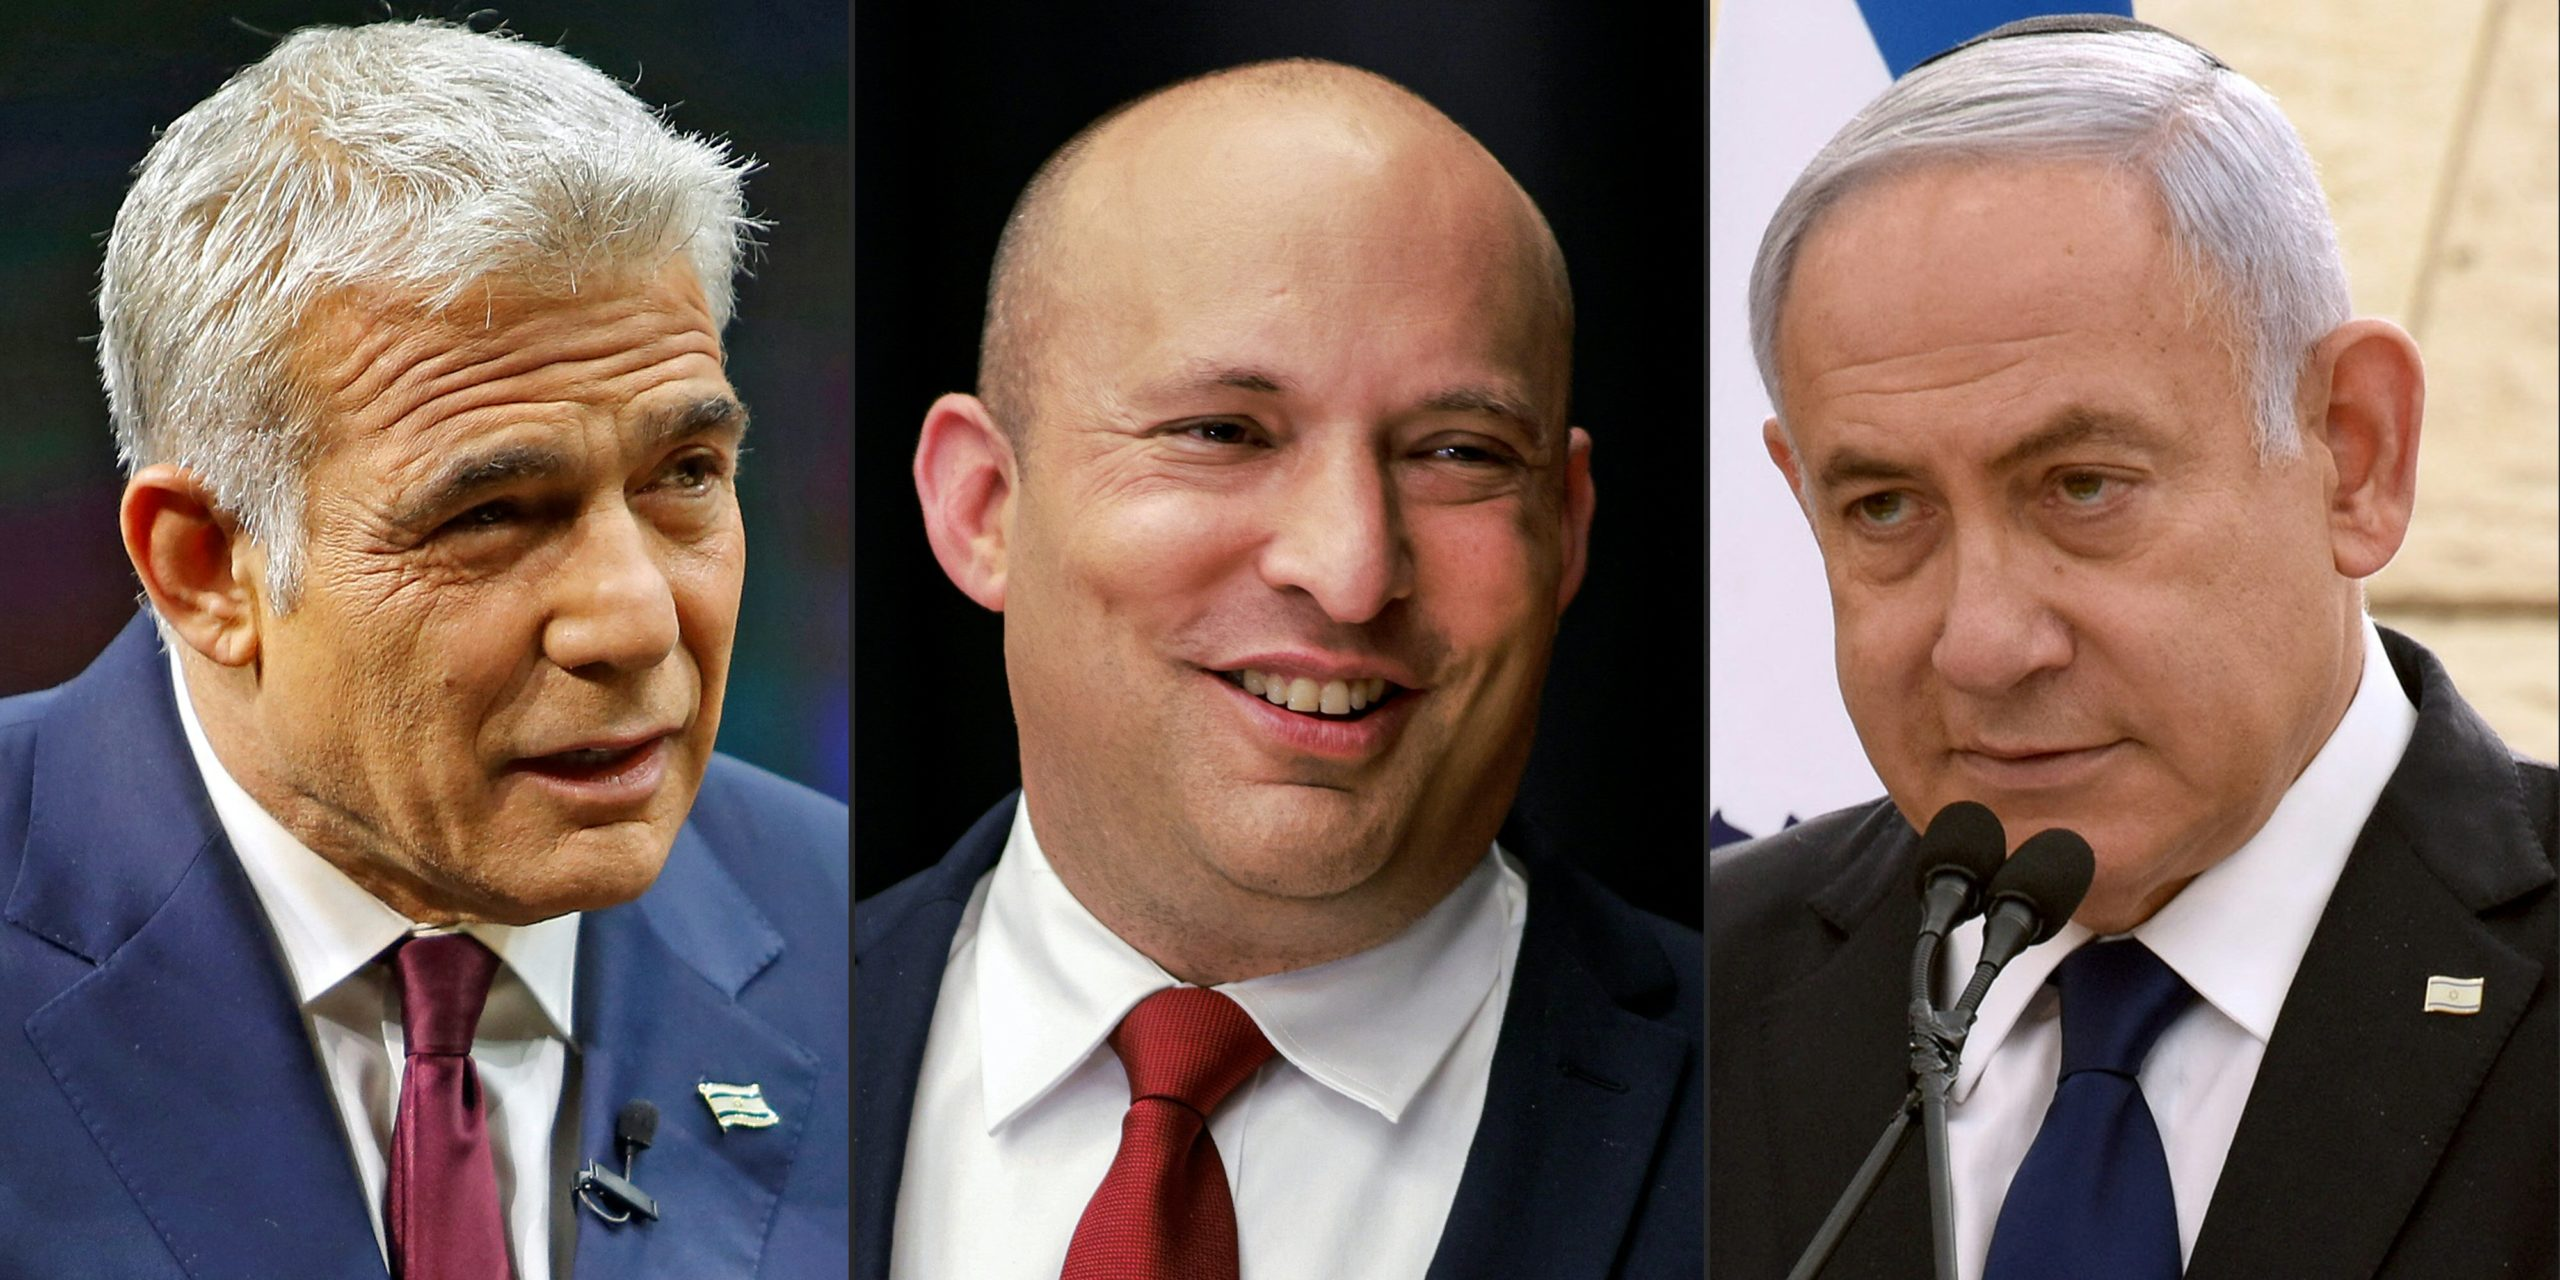 This combination of pictures created on May 5, 2021 shows (L to R) Yair Lapid of the Yesh Atid (There Is a Future) party speaking during an interview in Jerusalem on March 7, 2021; Naftali Bennett of the Yamina (Right) party speaking to reporters at a conference in Jerusalem on March 15, 2021; and Israeli Prime Minister Benjamin Netanyahu of the Likud party speaking during a ceremony marking Yom HaZikaron, Israel's Memorial Day, in Jerusalem on April 13, 2021. (GIL COHEN-MAGEN,MENAHEM KAHANA,DEBBIE HILL/POOL/AFP via Getty Images)